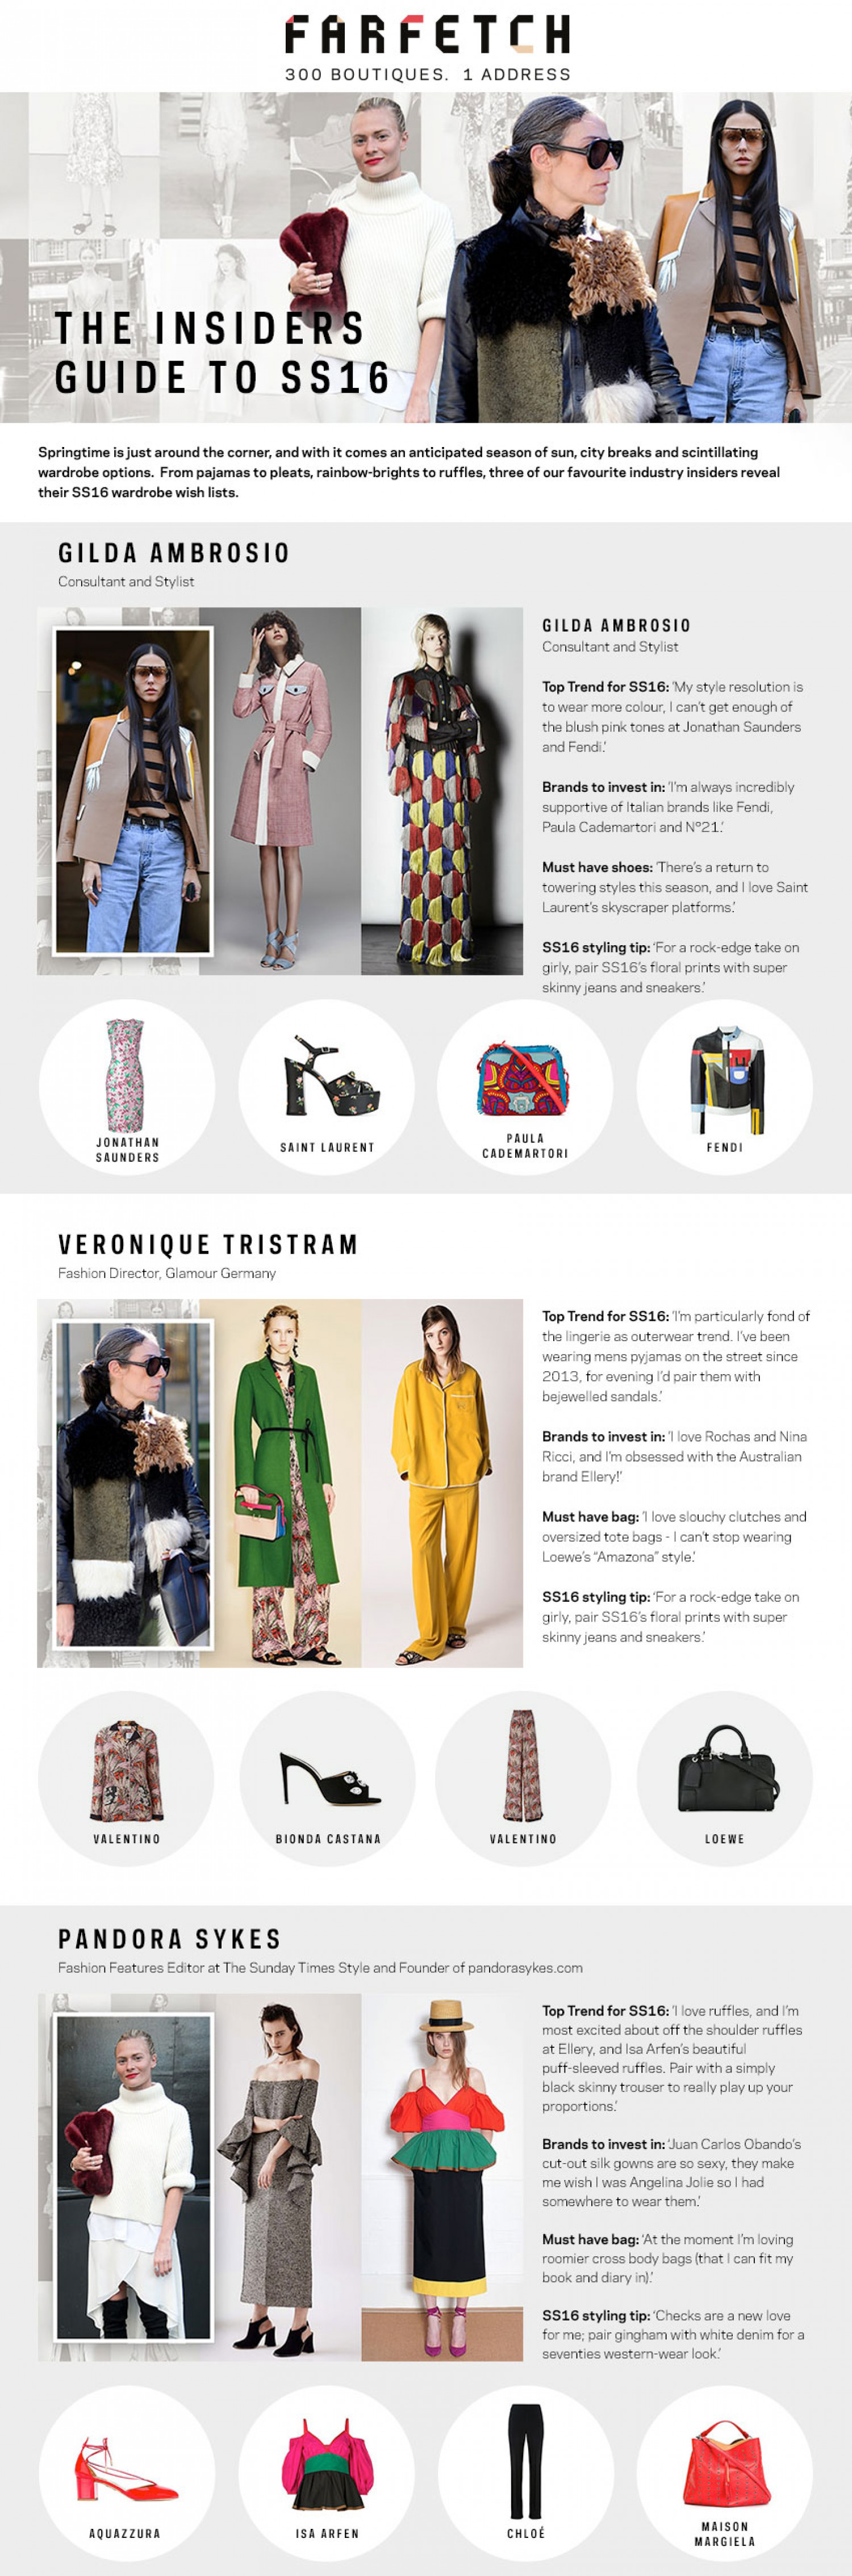 THE INSIDERS GUIDE TO SS16 Infographic